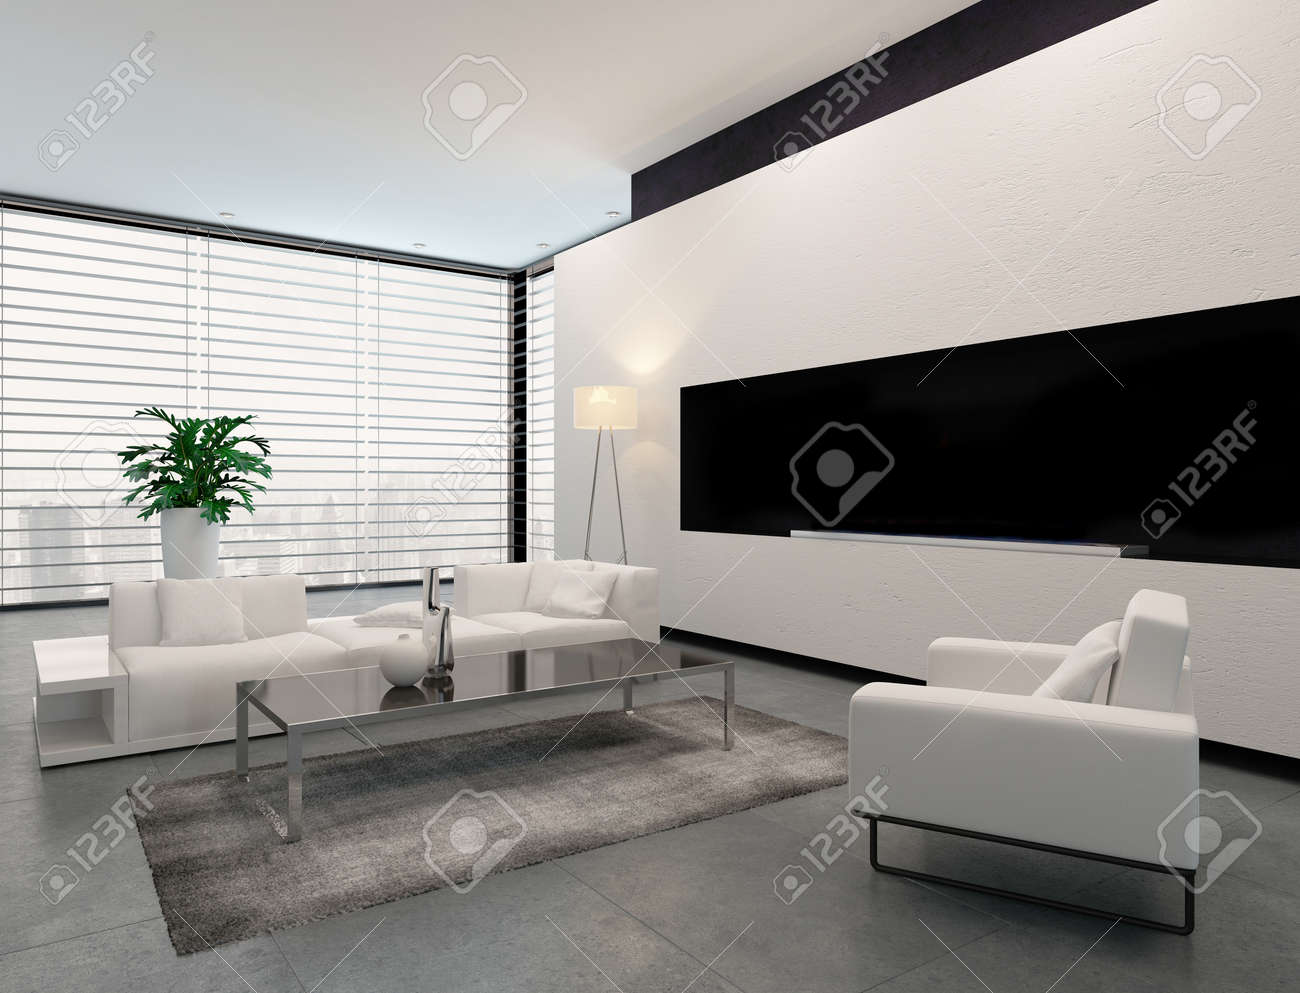 Modern Living Room Interior In White, Grey And Black In Minimalist Style  With Closed Blinds